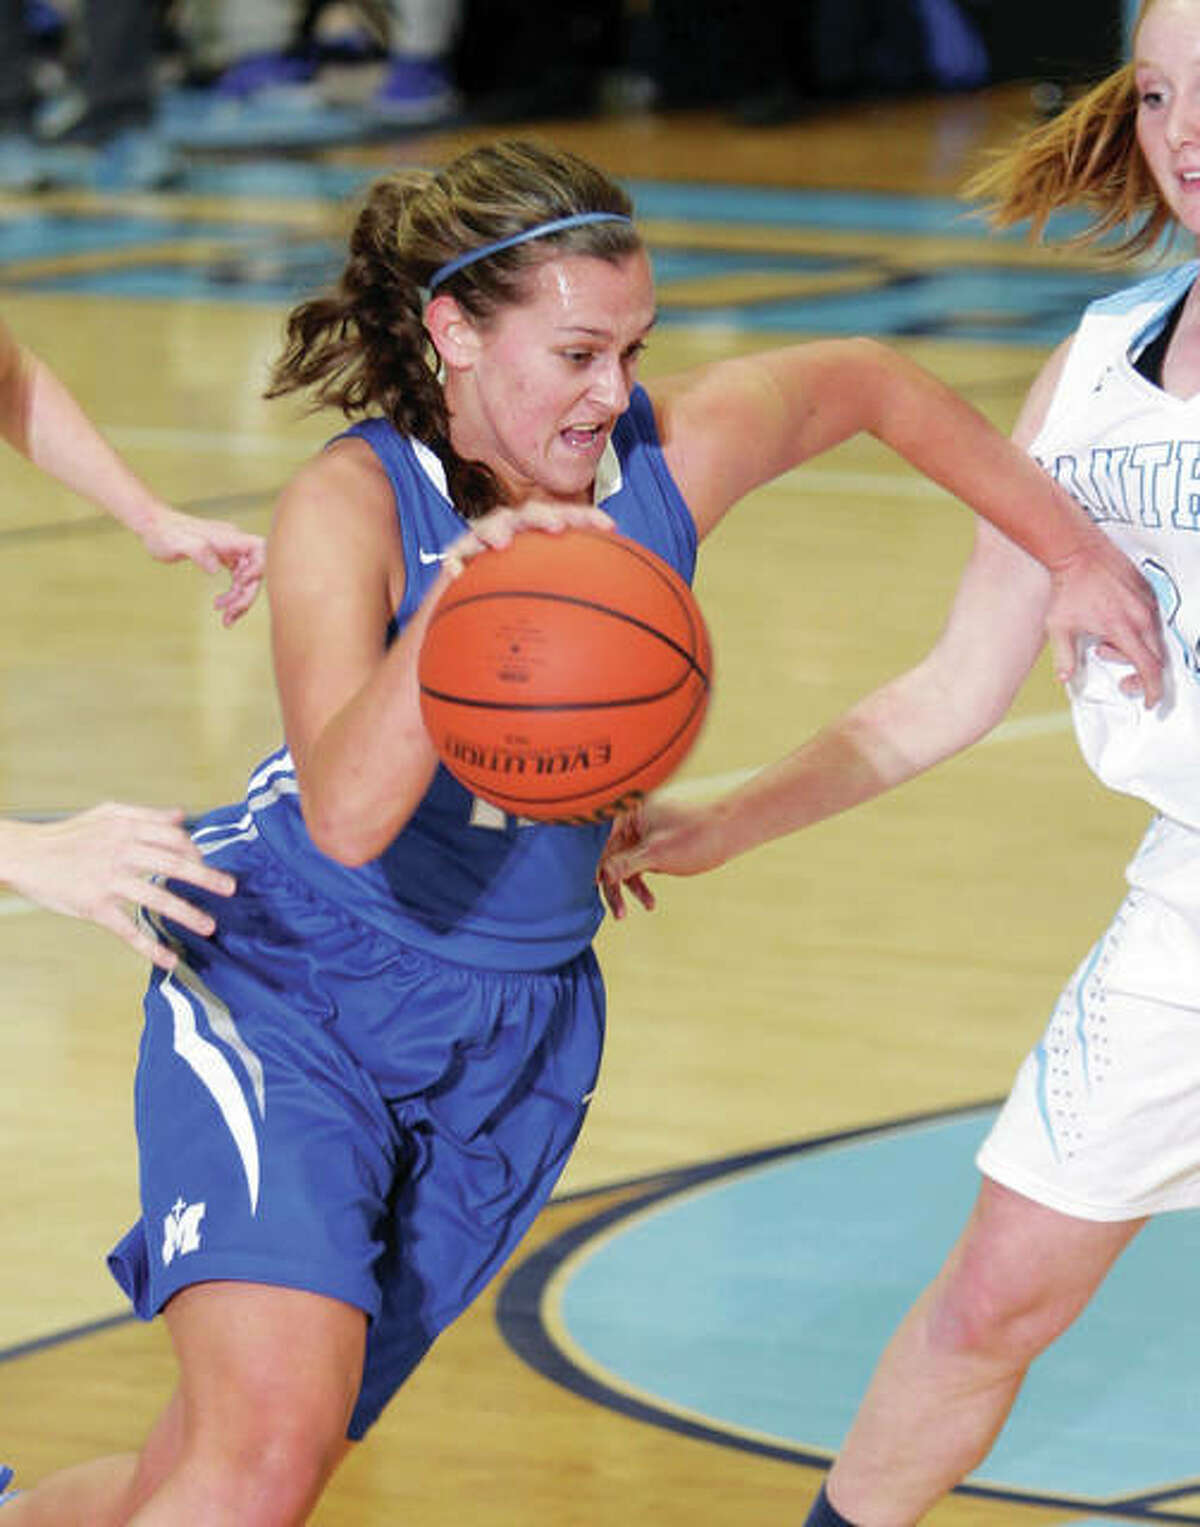 Marquette Catholic's Lauren Fischer drives to the basket during an Explorers win Dec. 6 at Havens Gym in Jerseyville. On Wednesday night, Fischer scored 26 points to lead the Explorers to a semifinal win over host Gibault at the Candy Cane Classic in Waterloo.